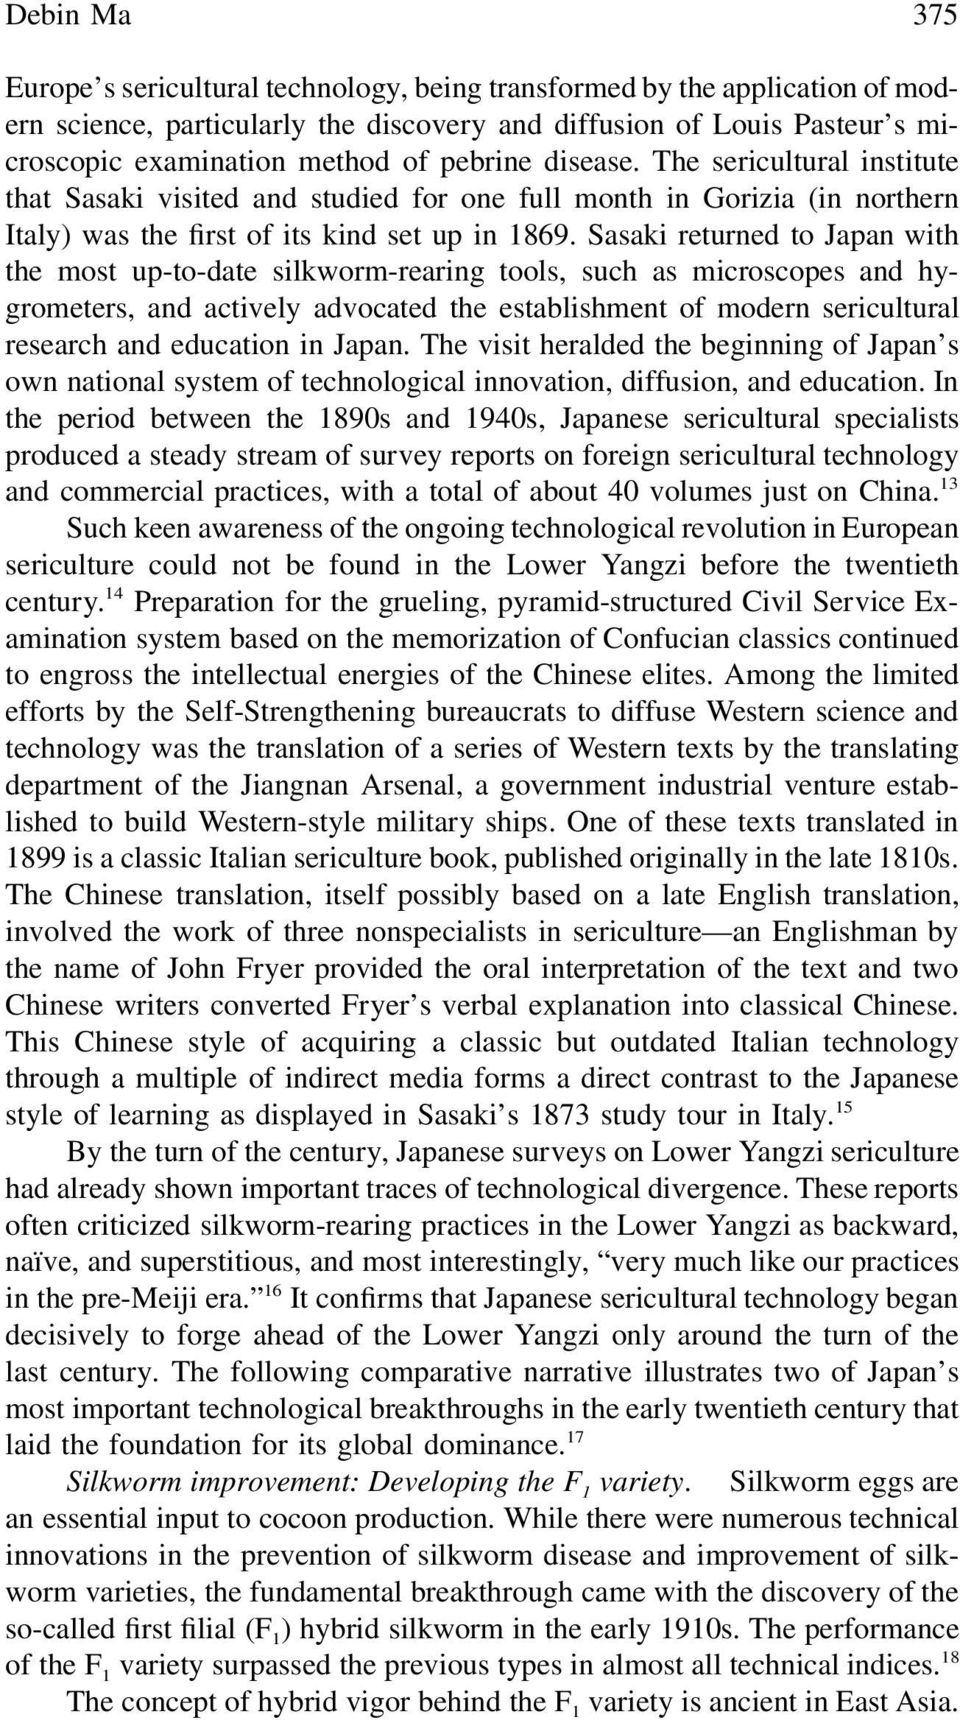 Sasaki returned to Japan with the most up-to-date silkworm-rearing tools, such as microscopes and hygrometers, and actively advocated the establishment of modern sericultural research and education